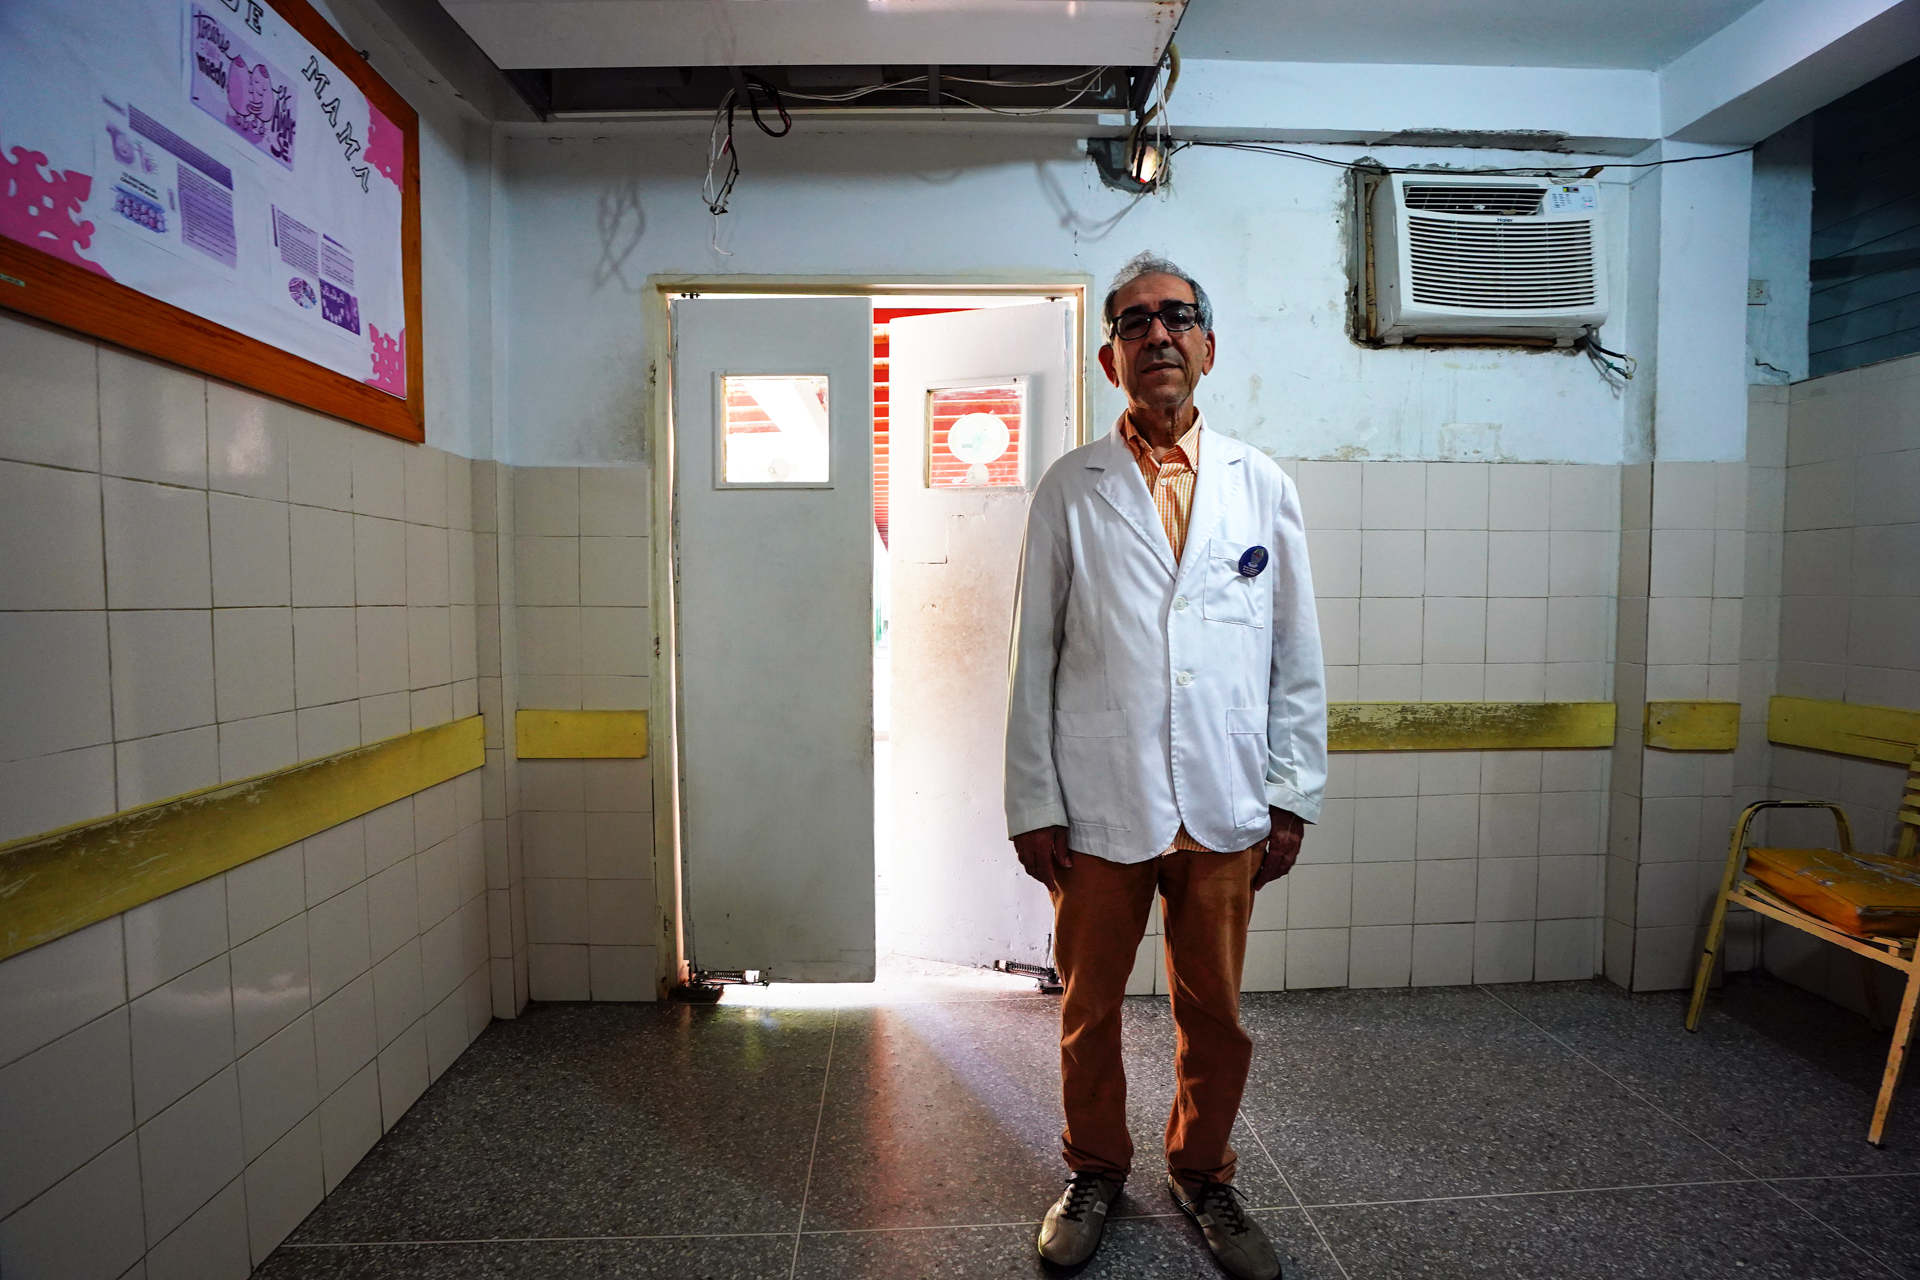 A wide shot of a doctor in a side room of a hospital